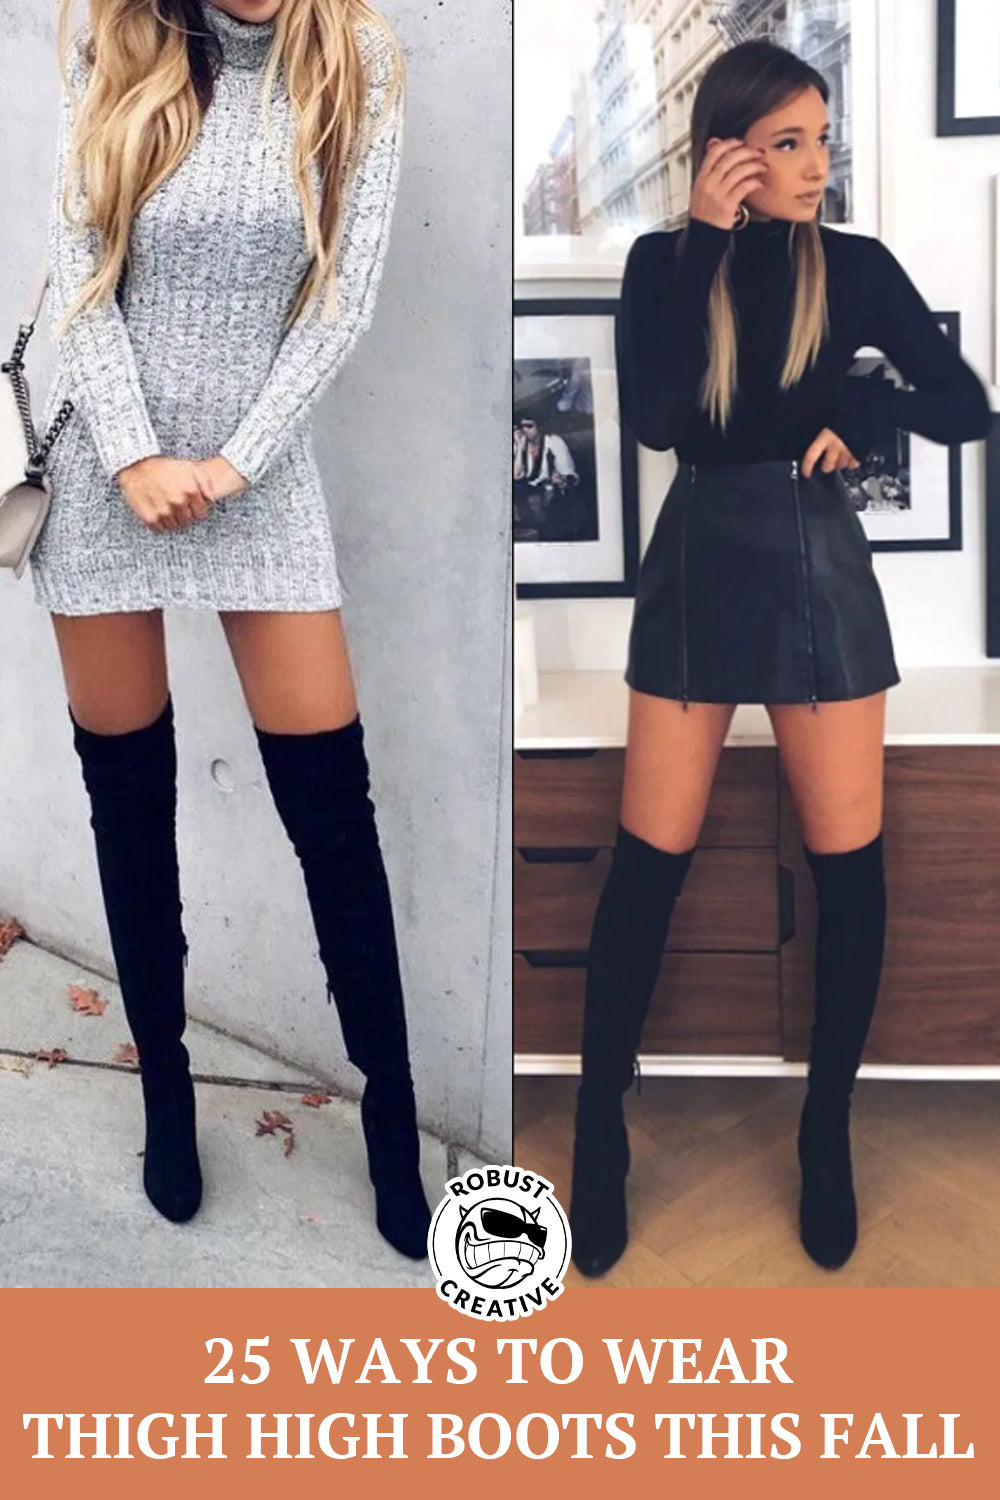 Outfits To Wear With Thigh High Boots